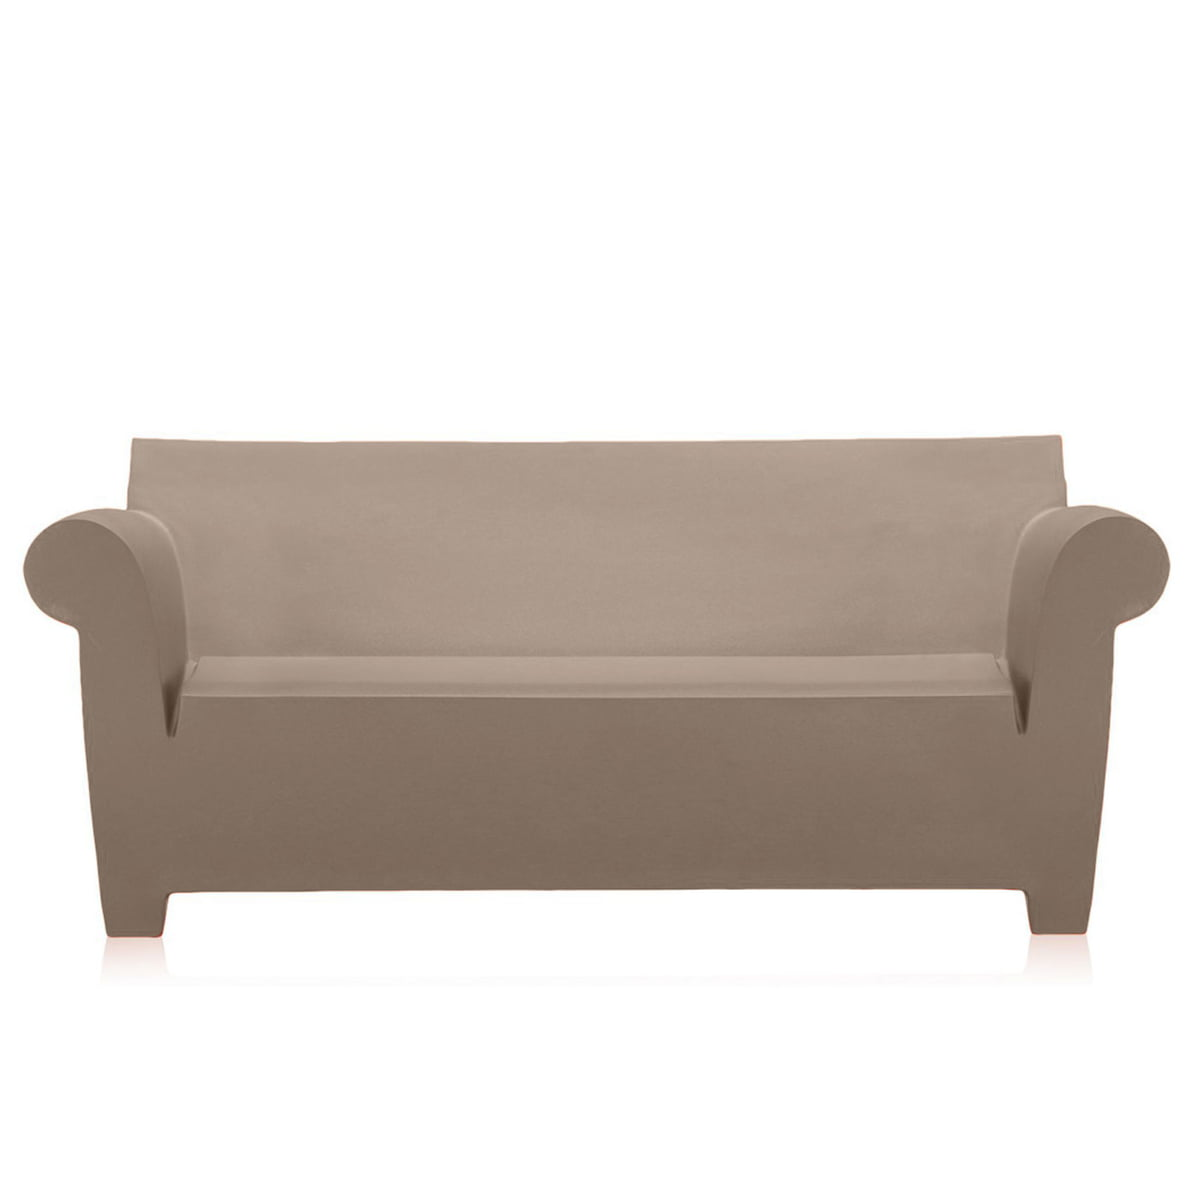 bubble club sofa and loveseat sets under 1000 kartell pulver puder t 77 h 80 b 195